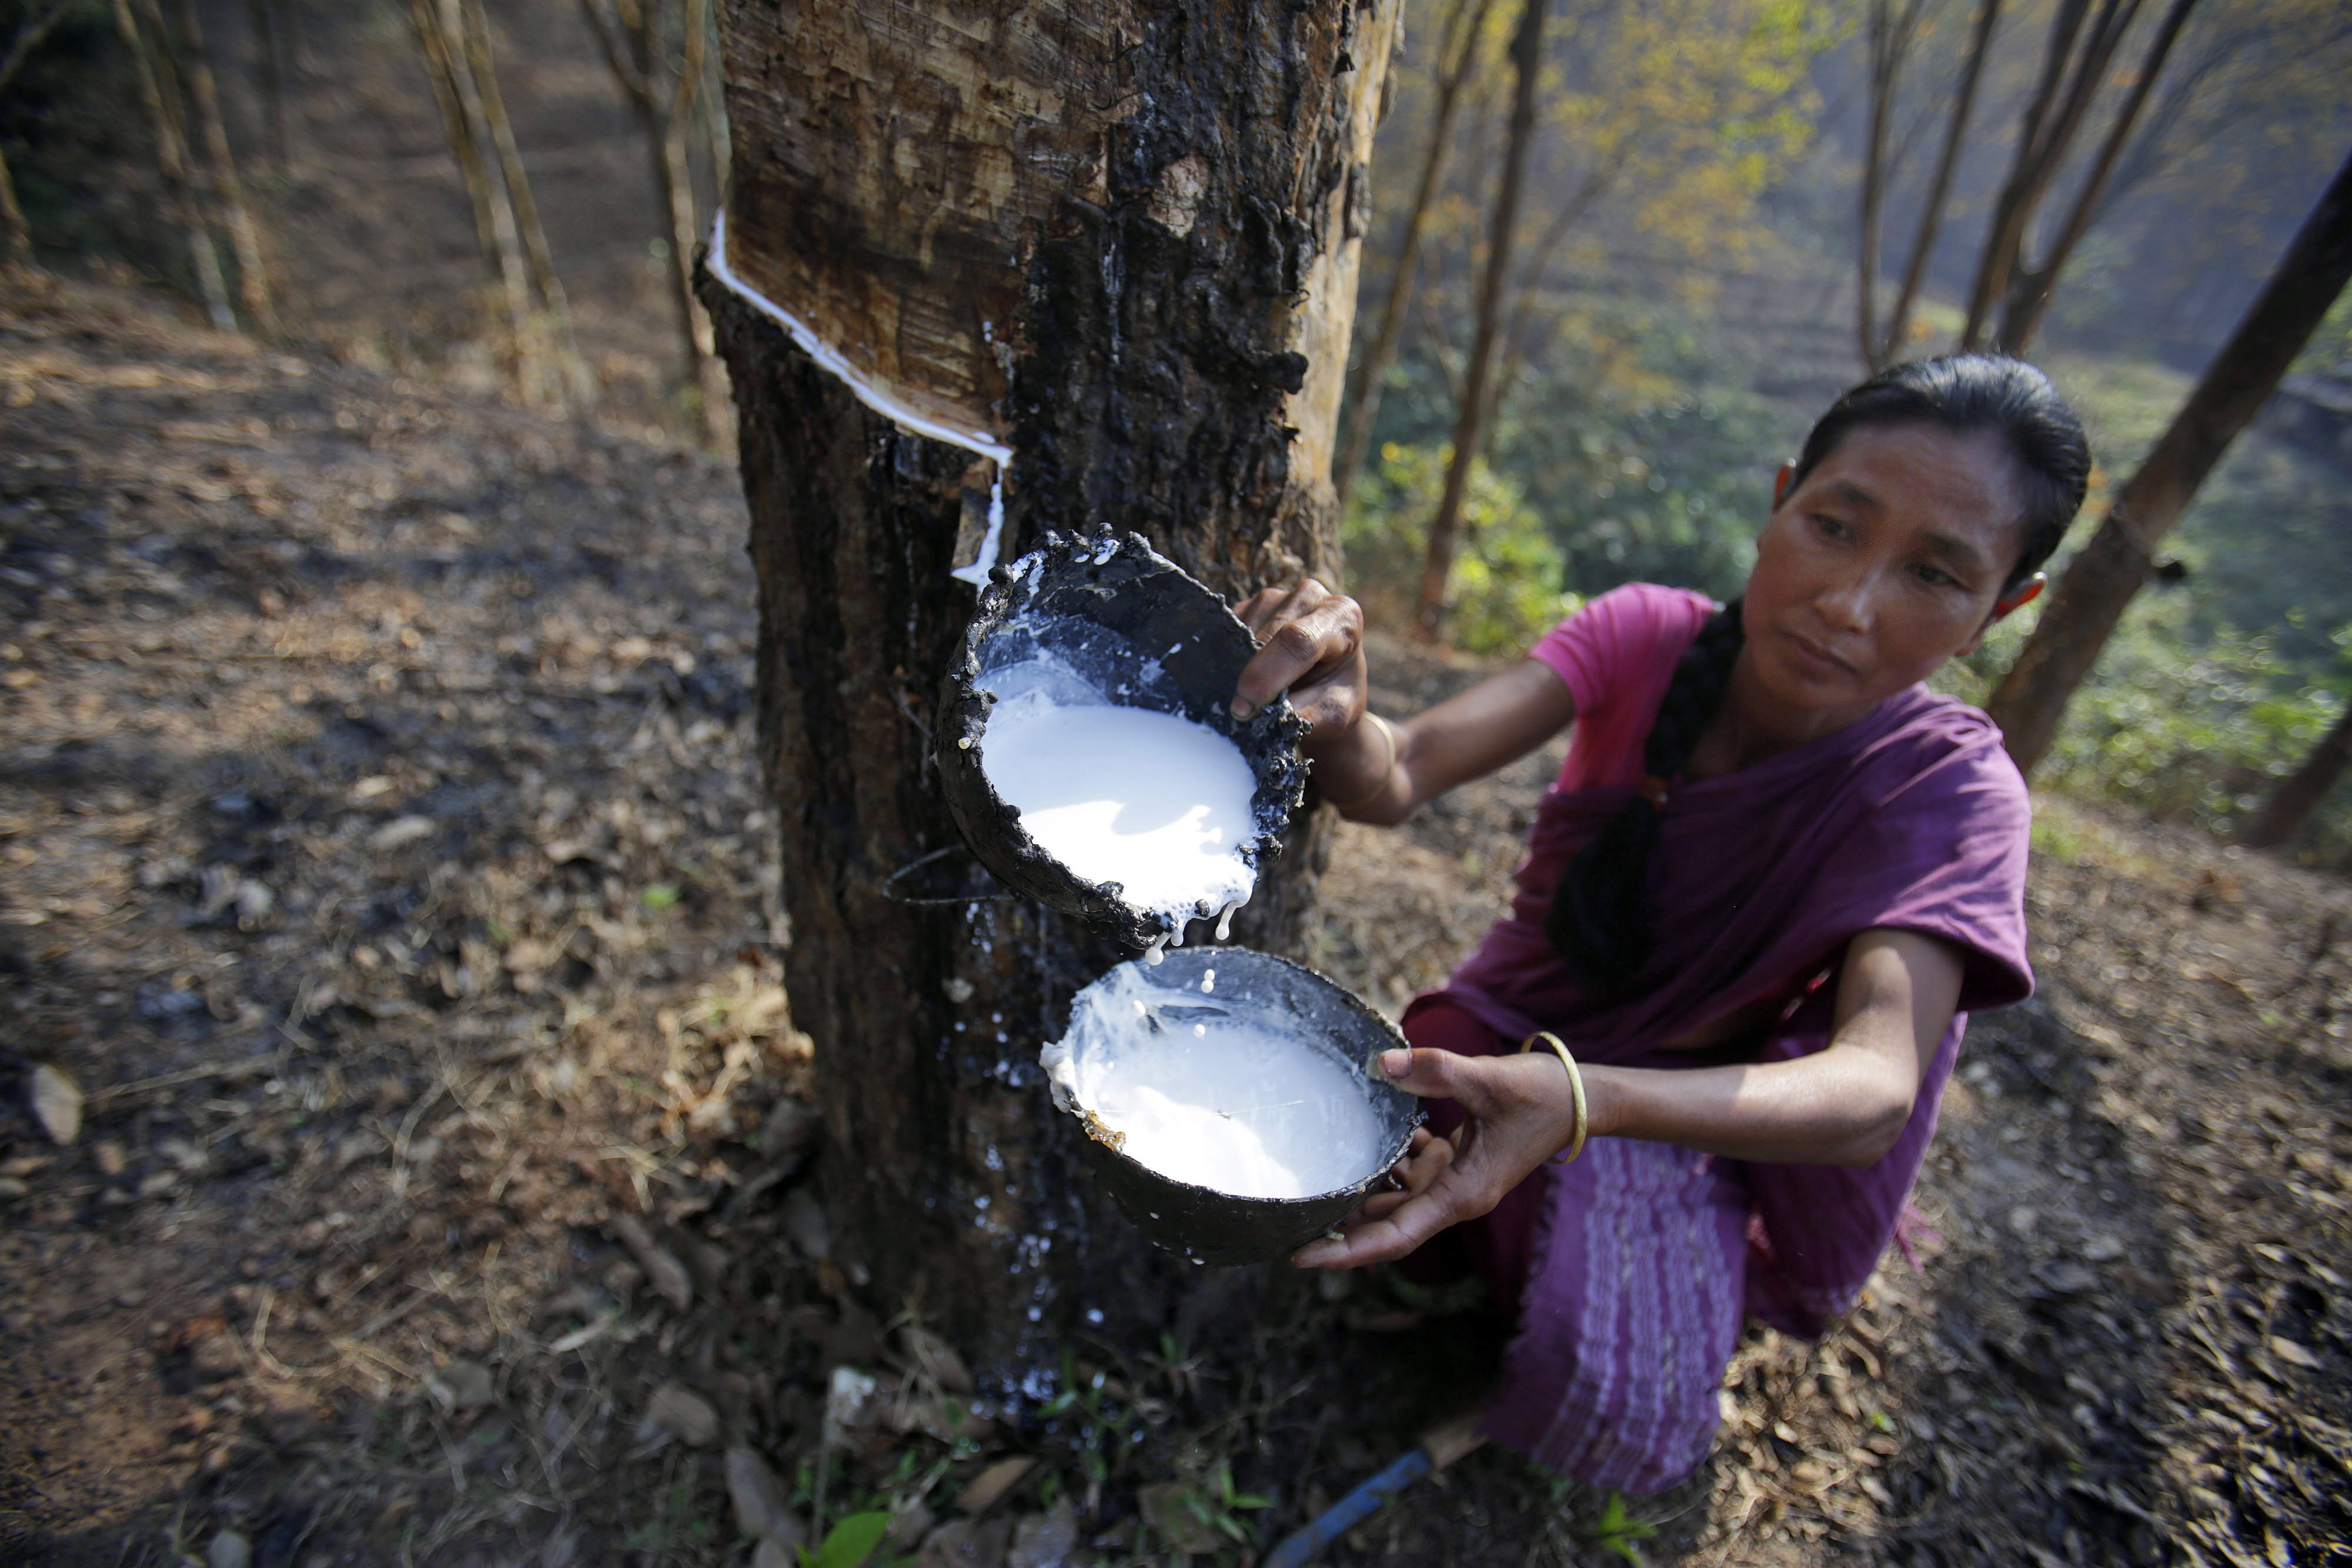 Daily wage laborer Jina Boro, 35, collects latex tapped from a rubber tree at a rubber farm in Hatikhuli village, about 35 kilometers (22 miles) east of Gauhati, India, Friday, March 7, 2014. International Women's Day will be marked on March 8. (AP Photo/Anupam Nath)